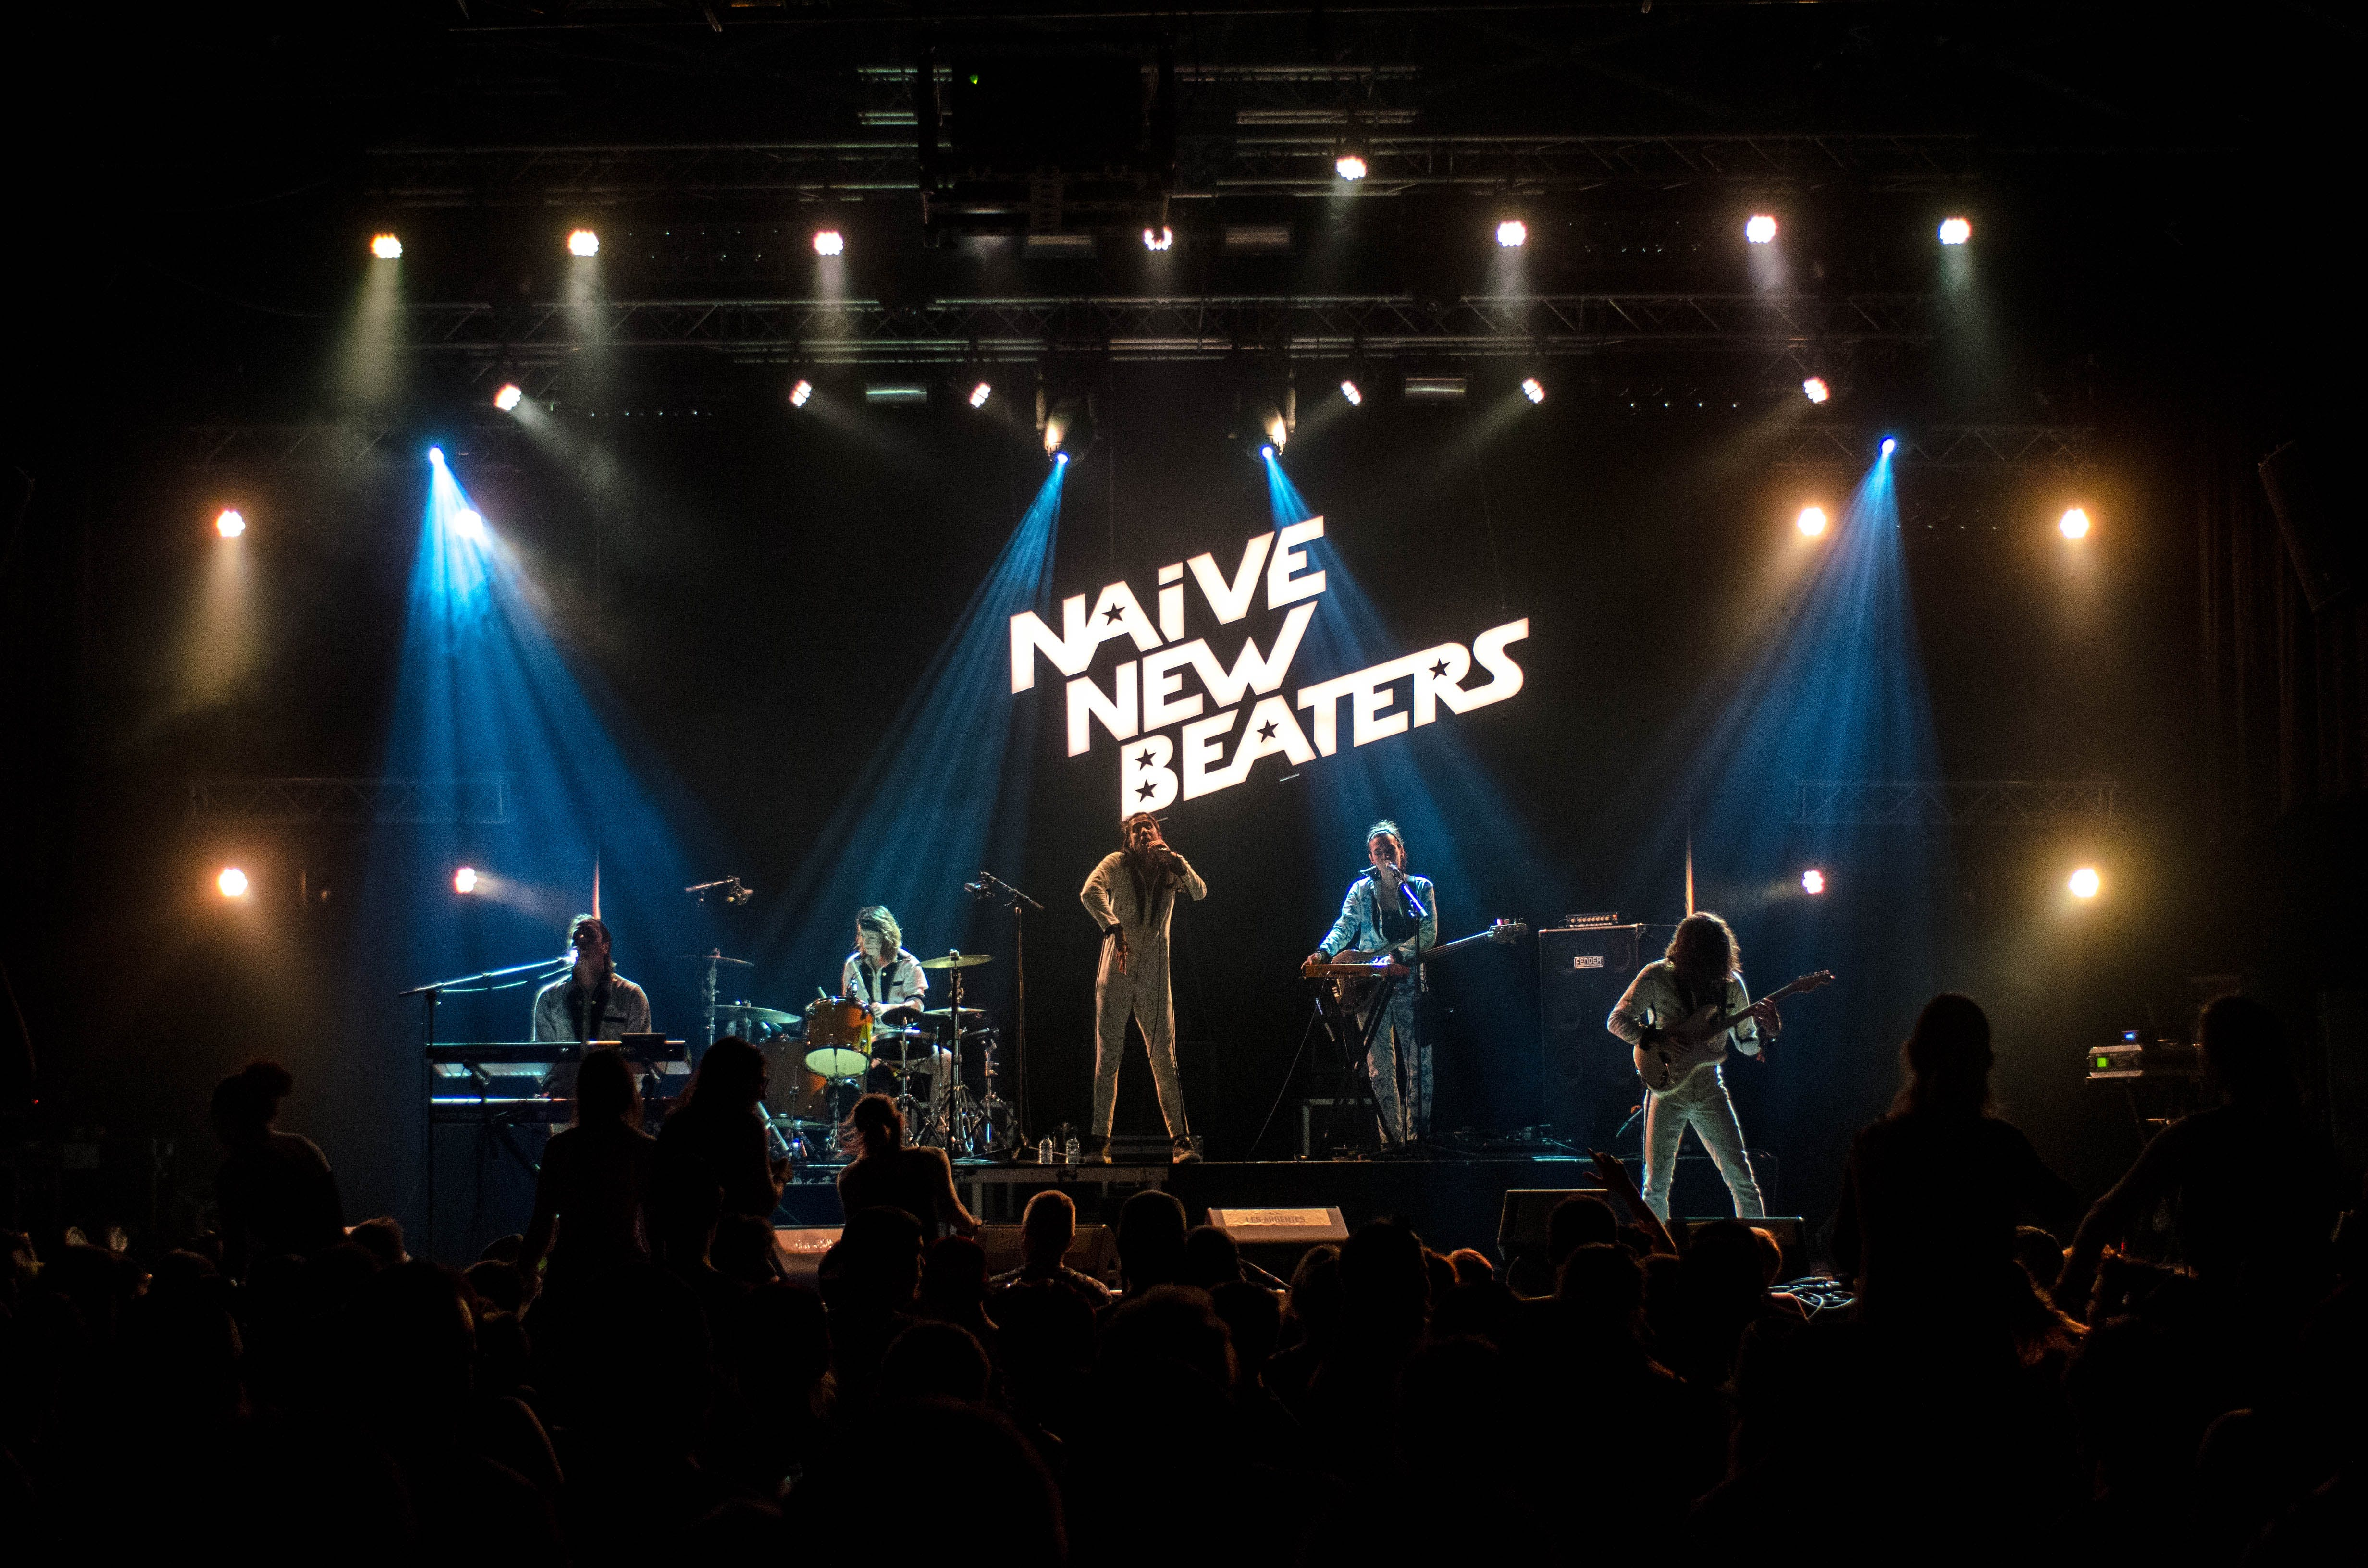 Naive New Beaters Band Inside Room